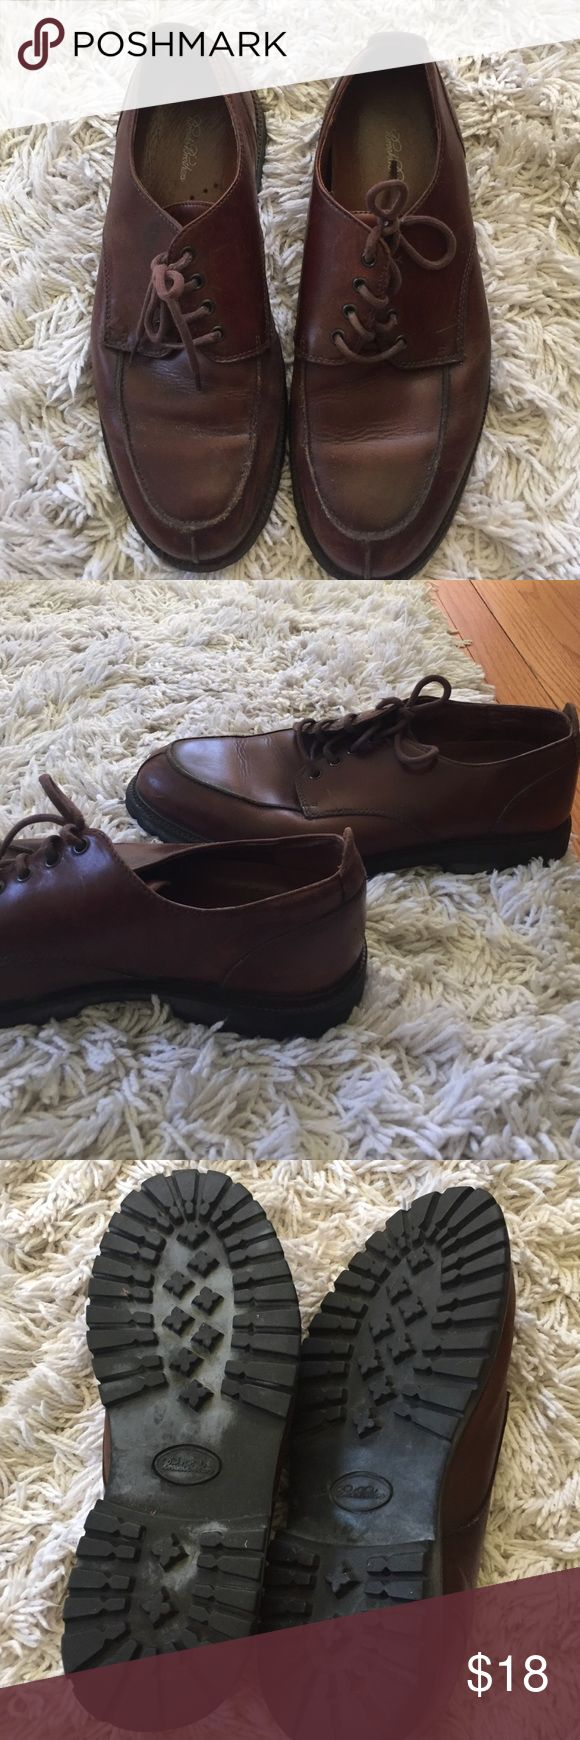 Men's Brooks Brothers shoes Brown, soles in good condition, some signs of wear Brooks Brothers Shoes